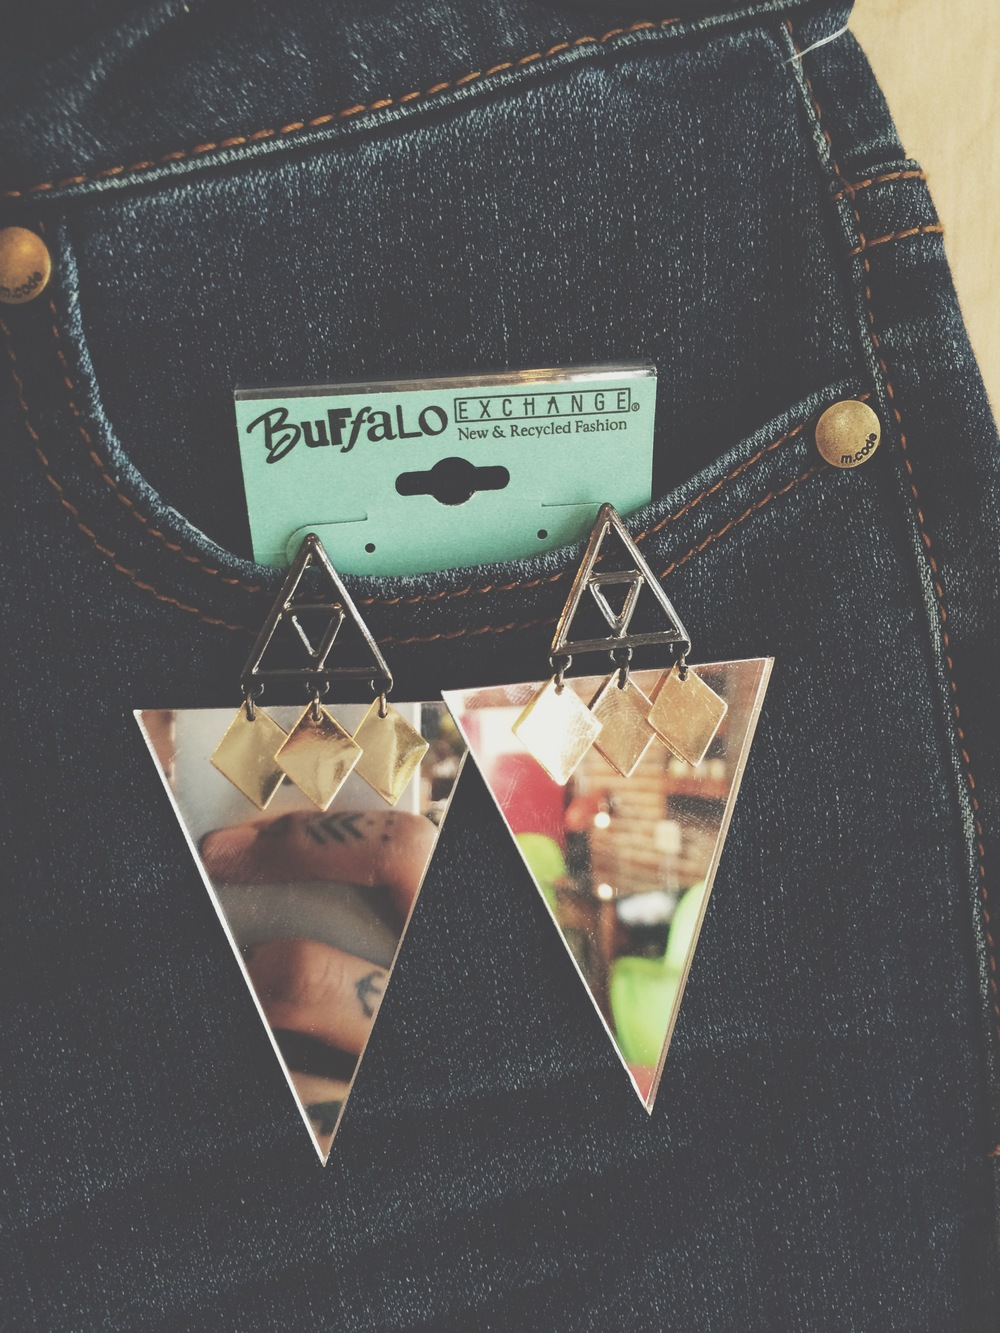 Geometric shaped earrings!